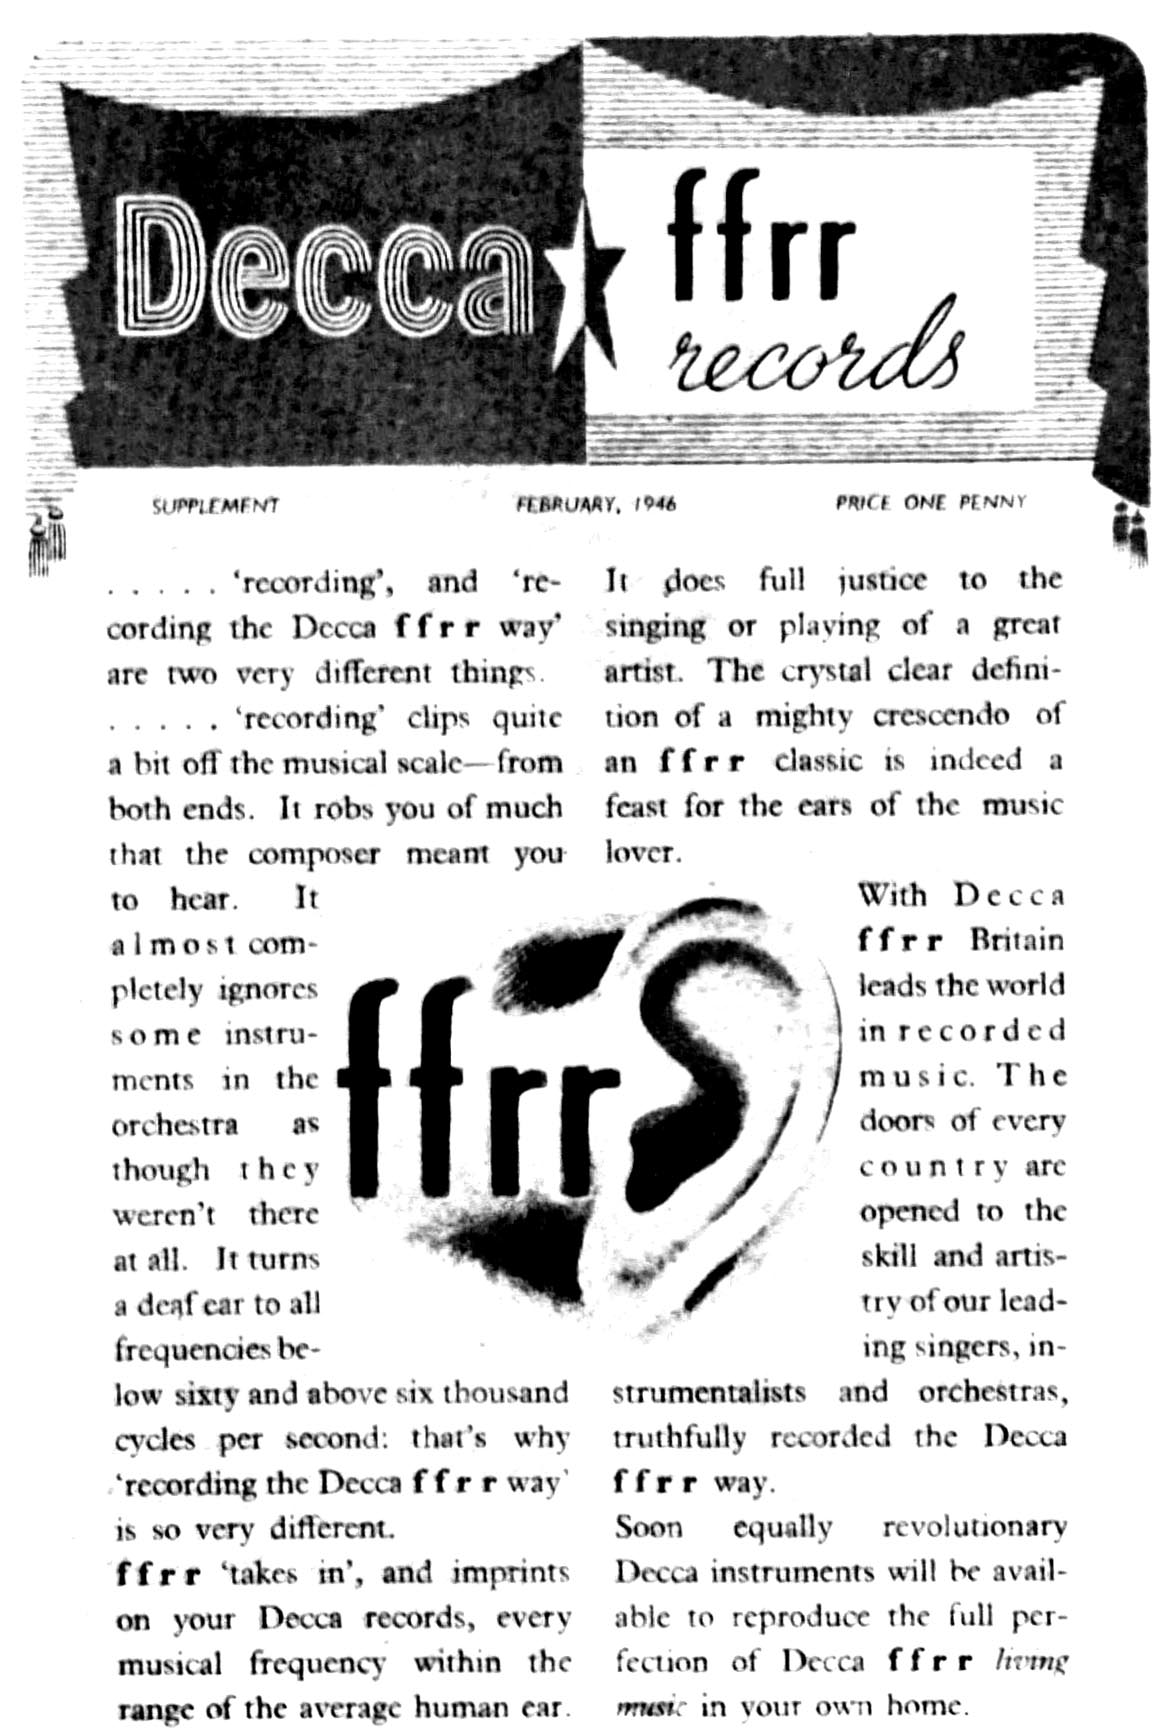 Decca advert announcing the benefits of full frequency range recording